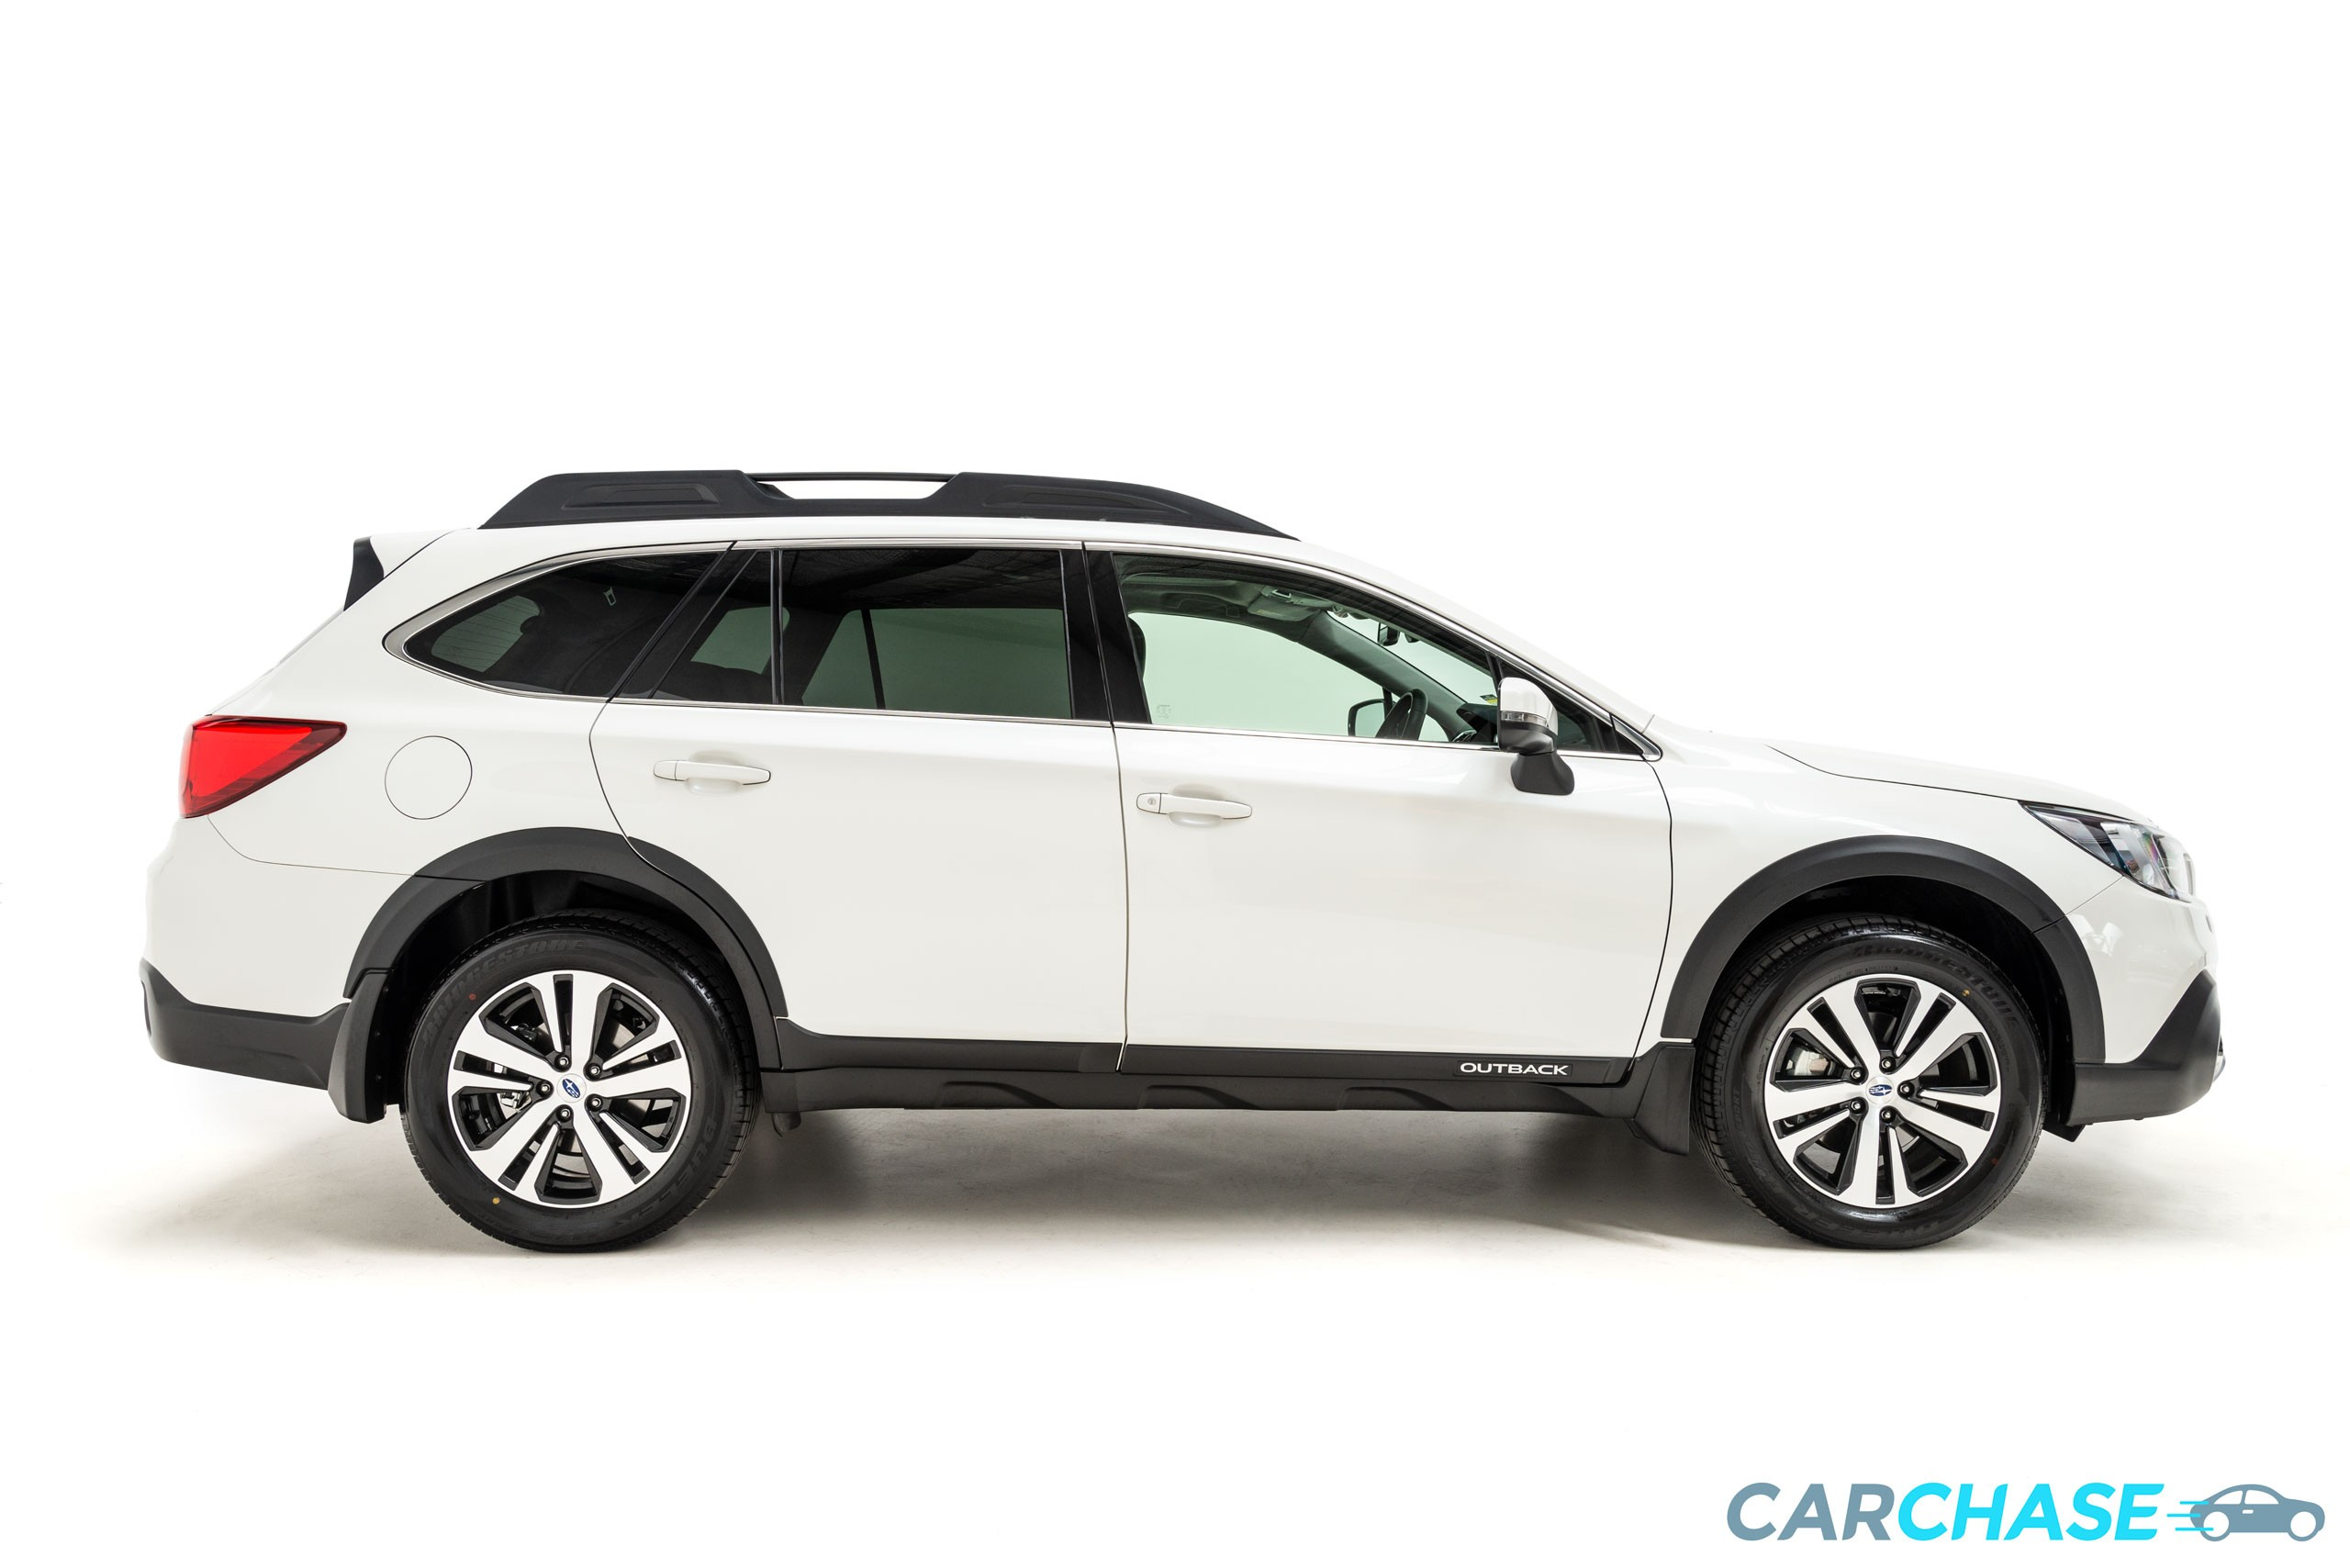 Image of right profile of 2018 Subaru Outback 2.5i Premium